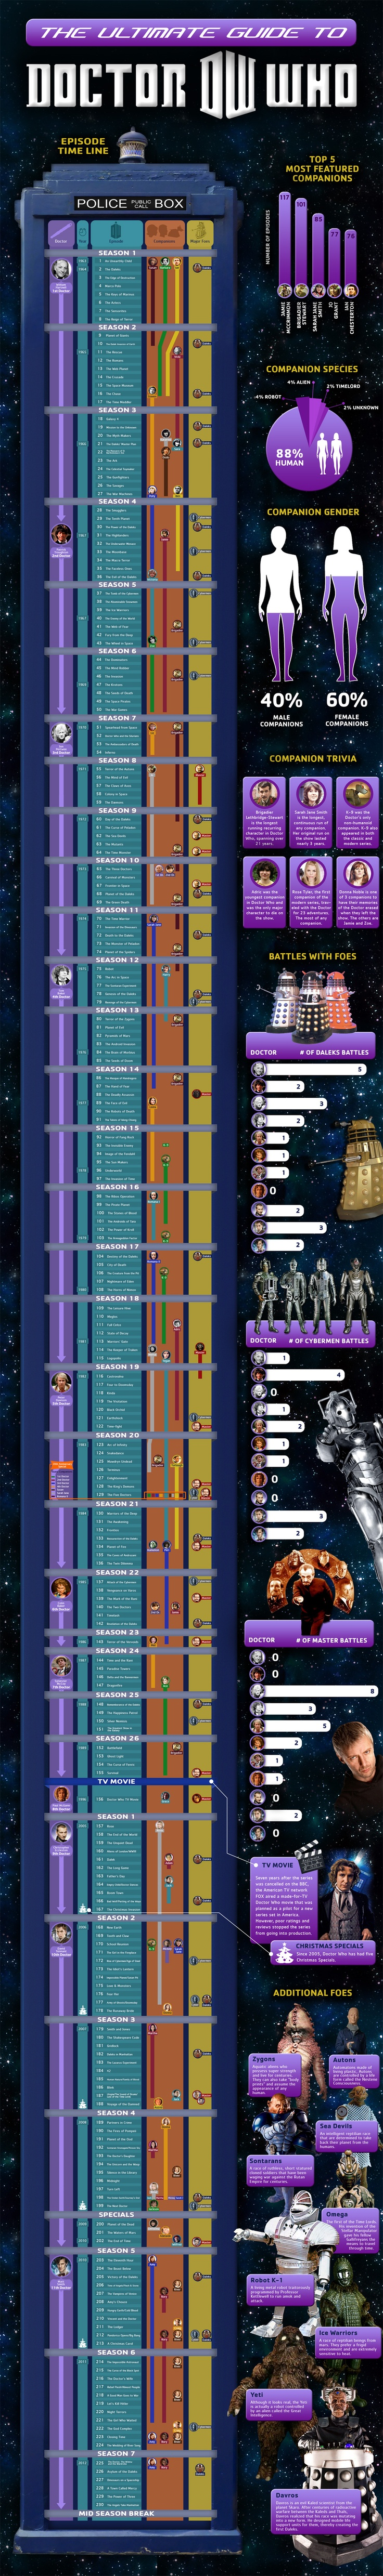 The ultimate guide to doctor who infographic best infographics